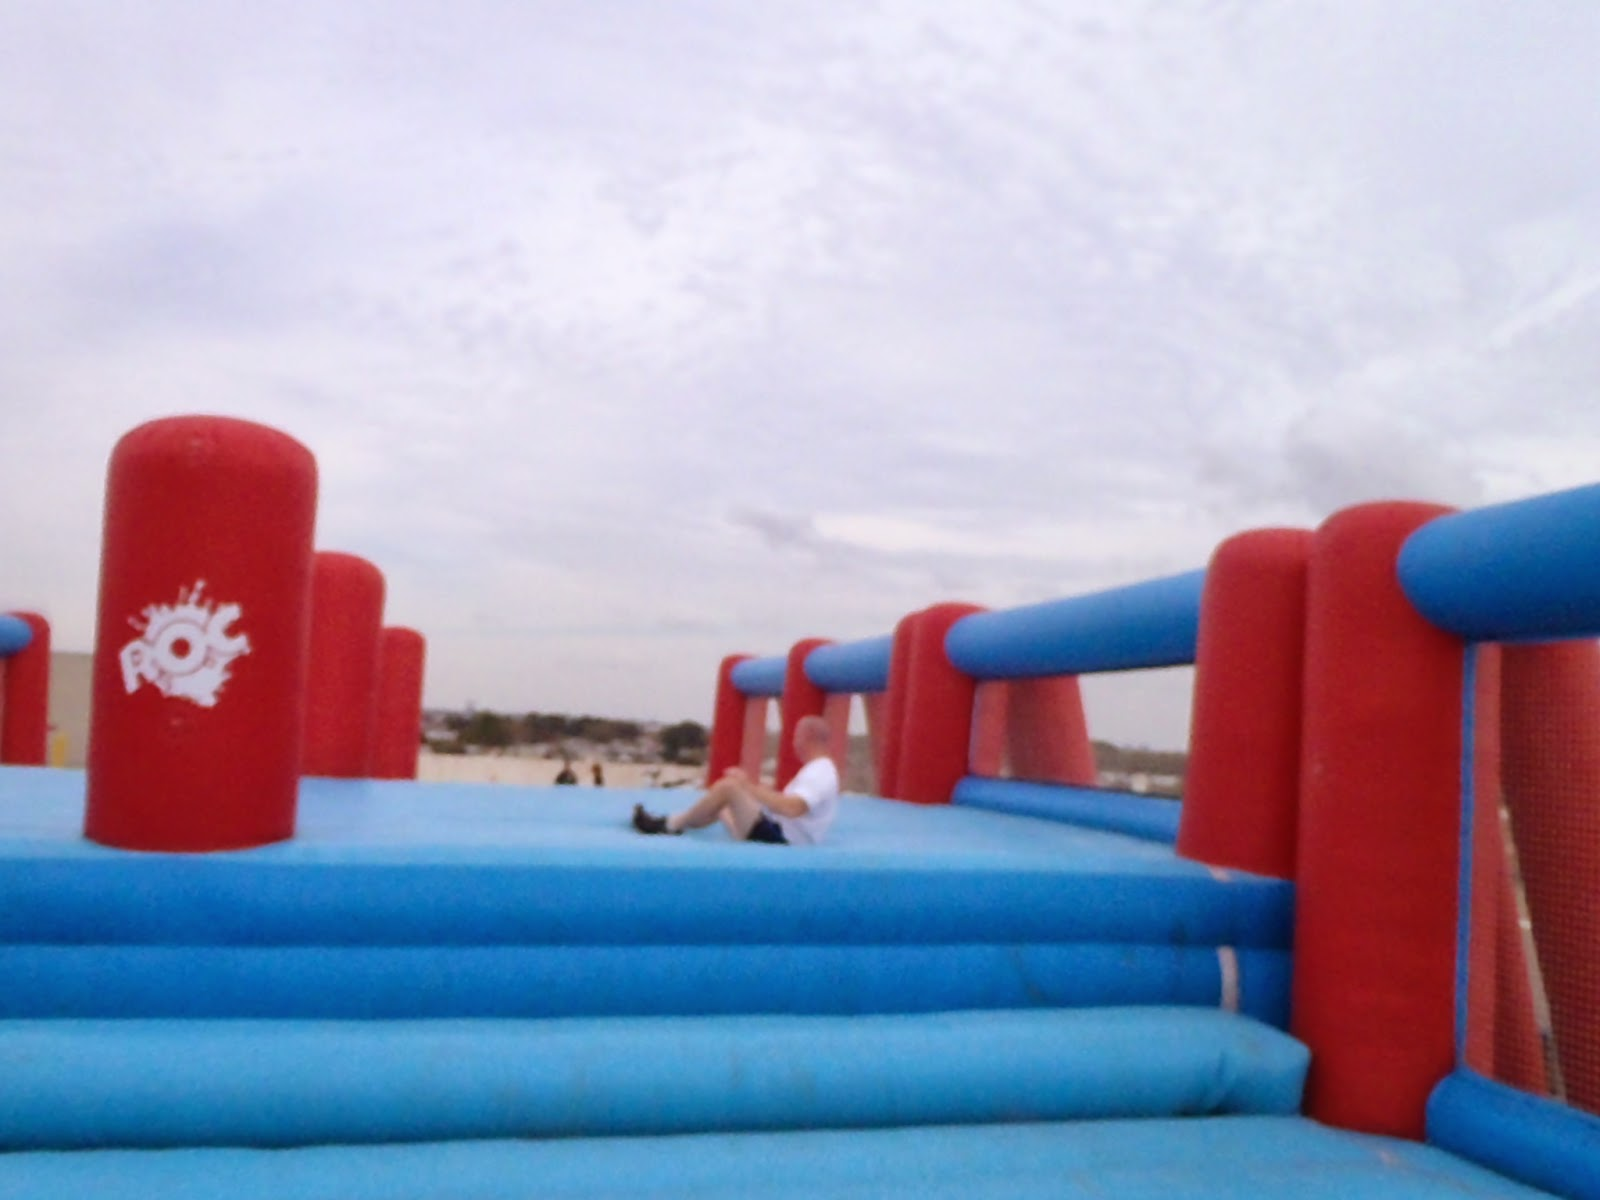 Roc Race world's largest moon bounce